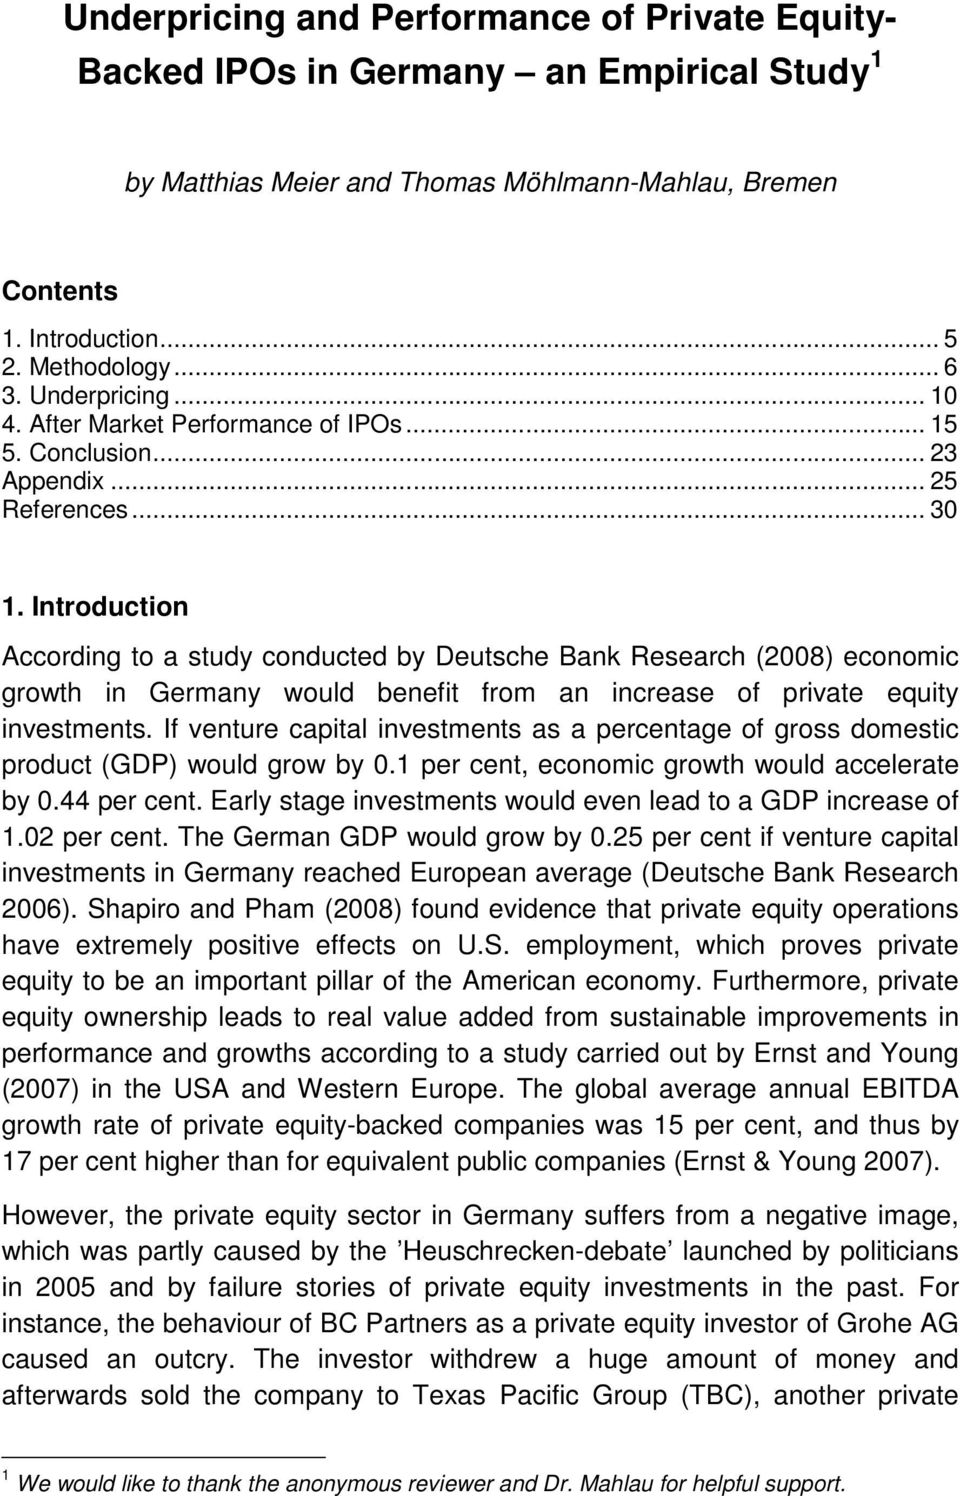 Introduction According to a study conducted by Deutsche Bank Research (2008) economic growth in Germany would benefit from an increase of private equity investments.